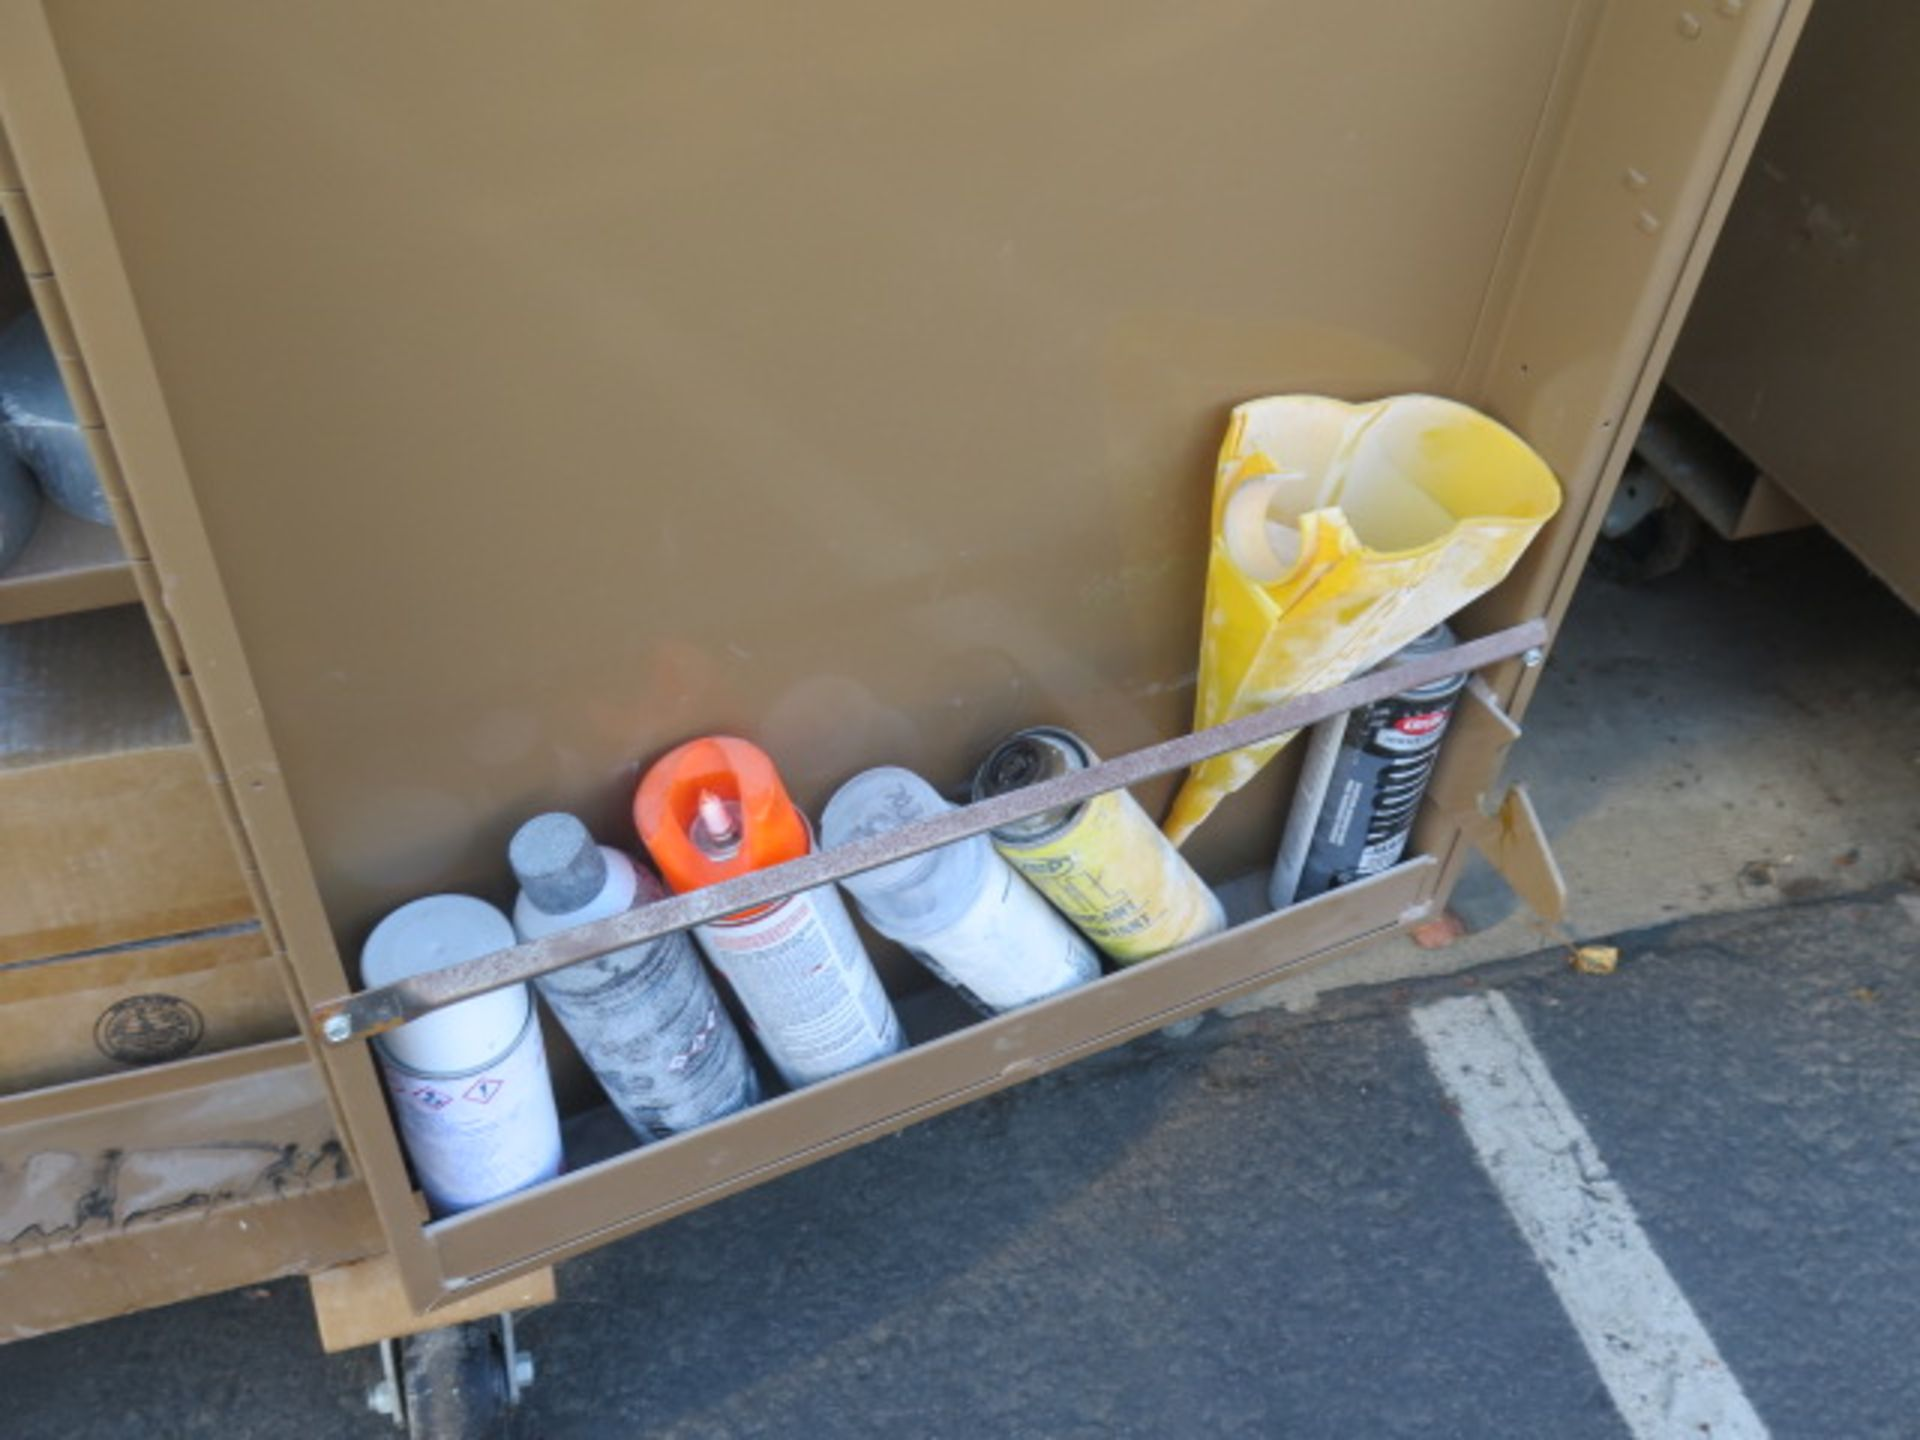 Knaack mdl. 139 Jobmaster Rolling Job Boxw/ Hardware and Supplies (SOLD AS-IS - NO WARRANTY) - Image 19 of 21